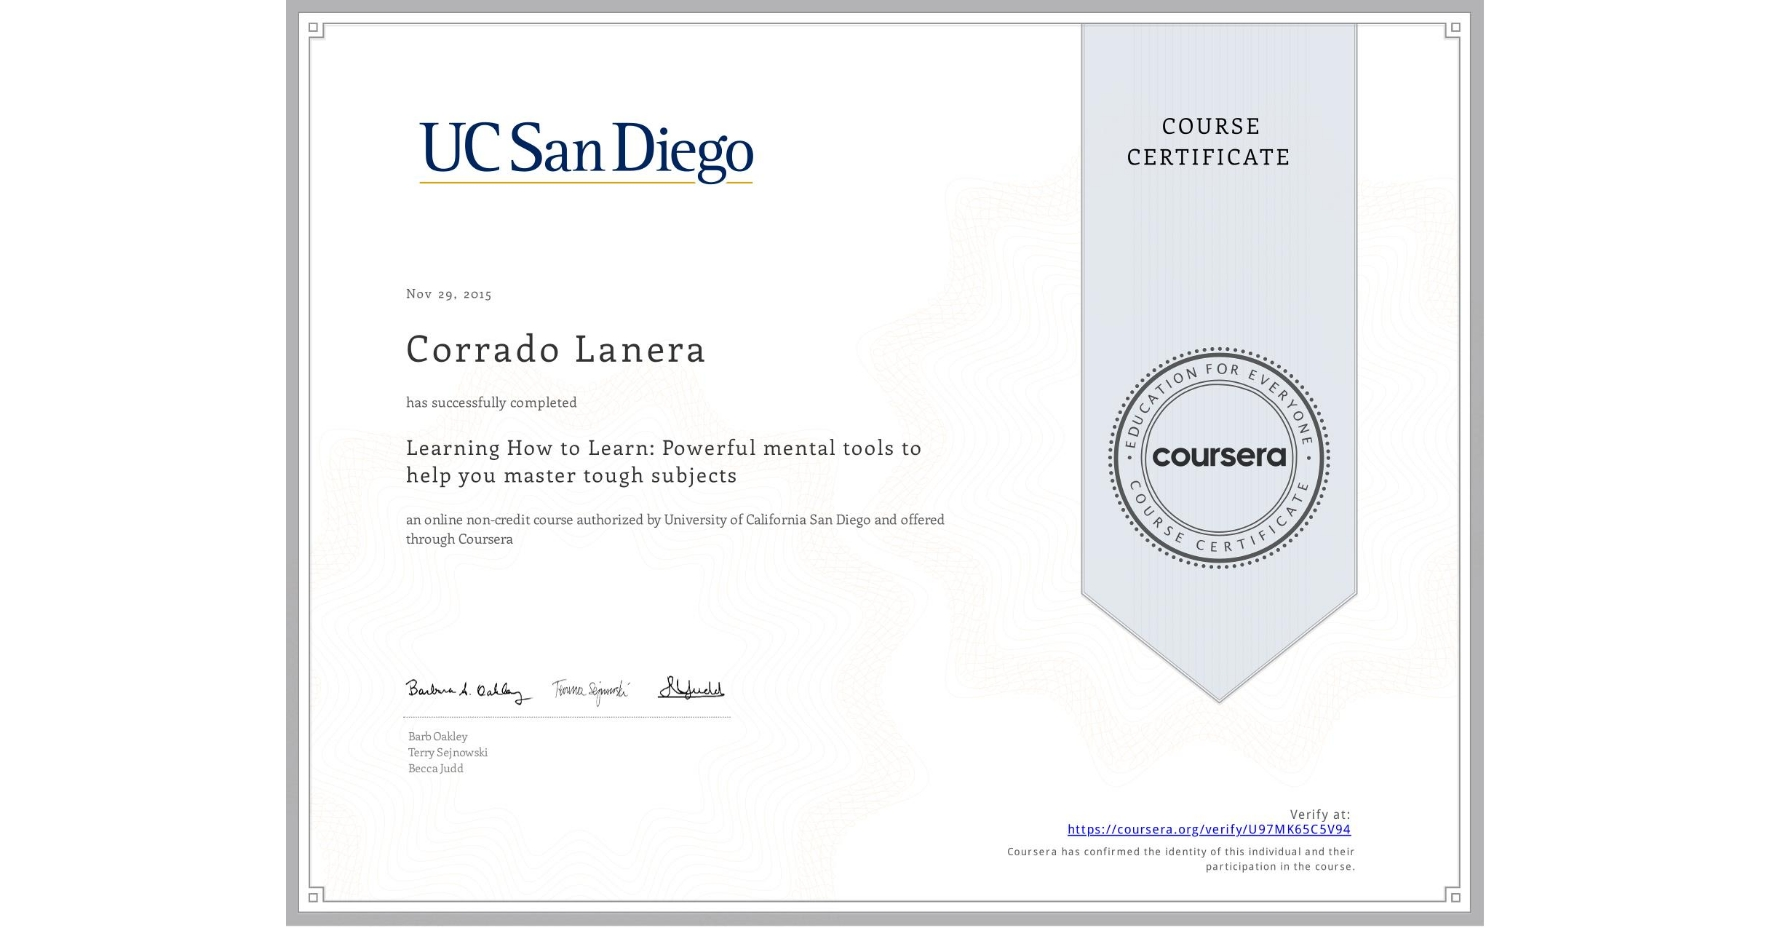 View certificate for Corrado Lanera, Learning How to Learn: Powerful mental tools to help you master tough subjects, an online non-credit course authorized by Deep Teaching Solutions and offered through Coursera